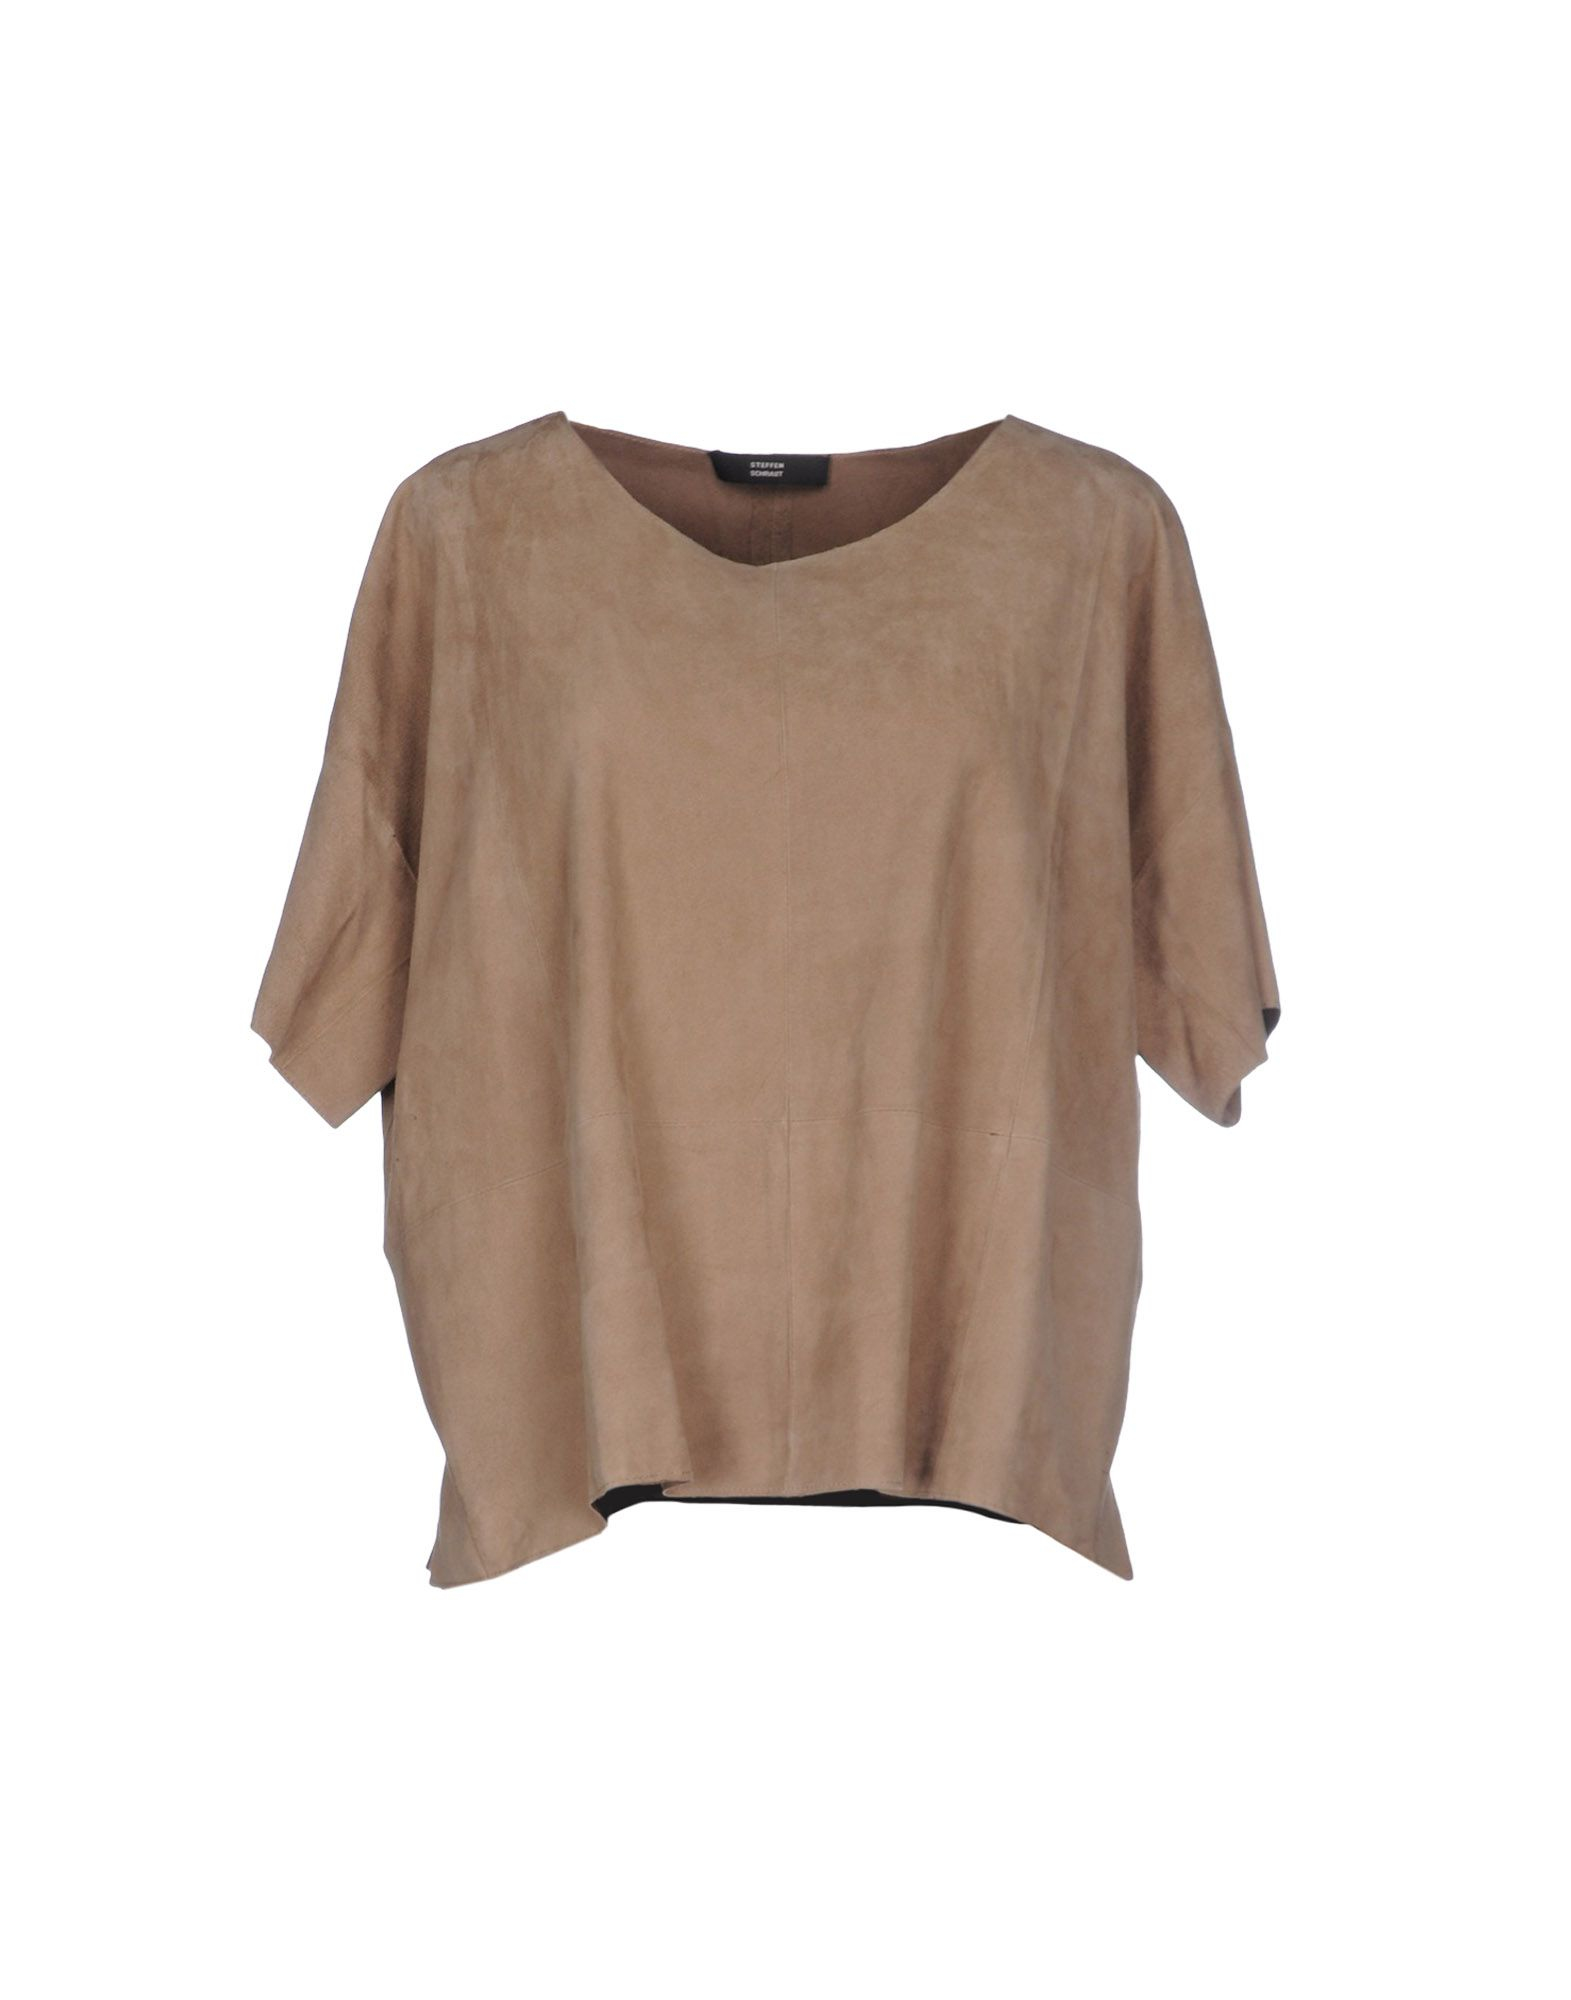 steffen schraut blouse in beige camel lyst. Black Bedroom Furniture Sets. Home Design Ideas